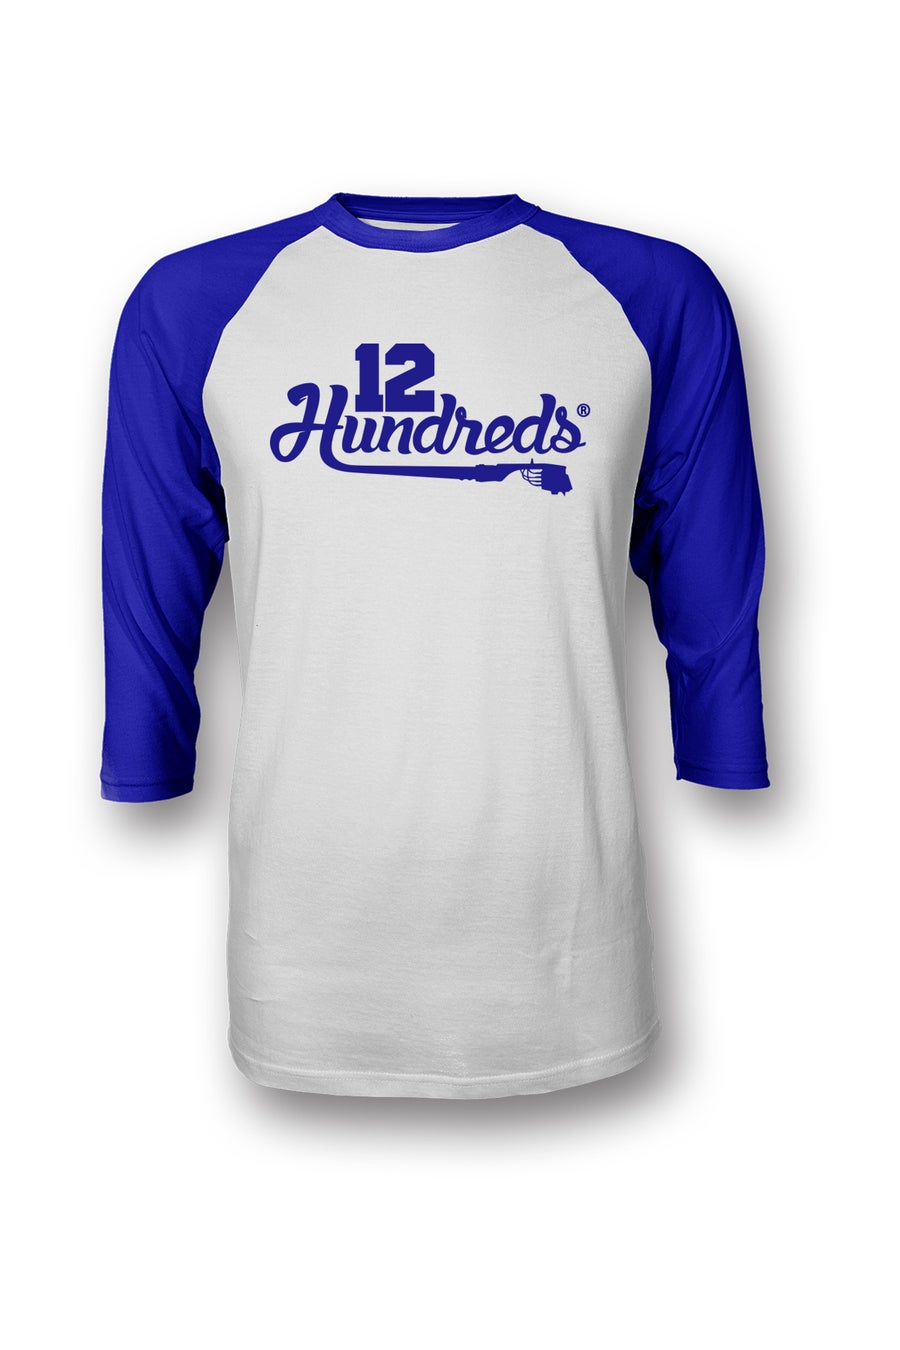 Image of Team 12 hundreds : BLUE RAGLAN